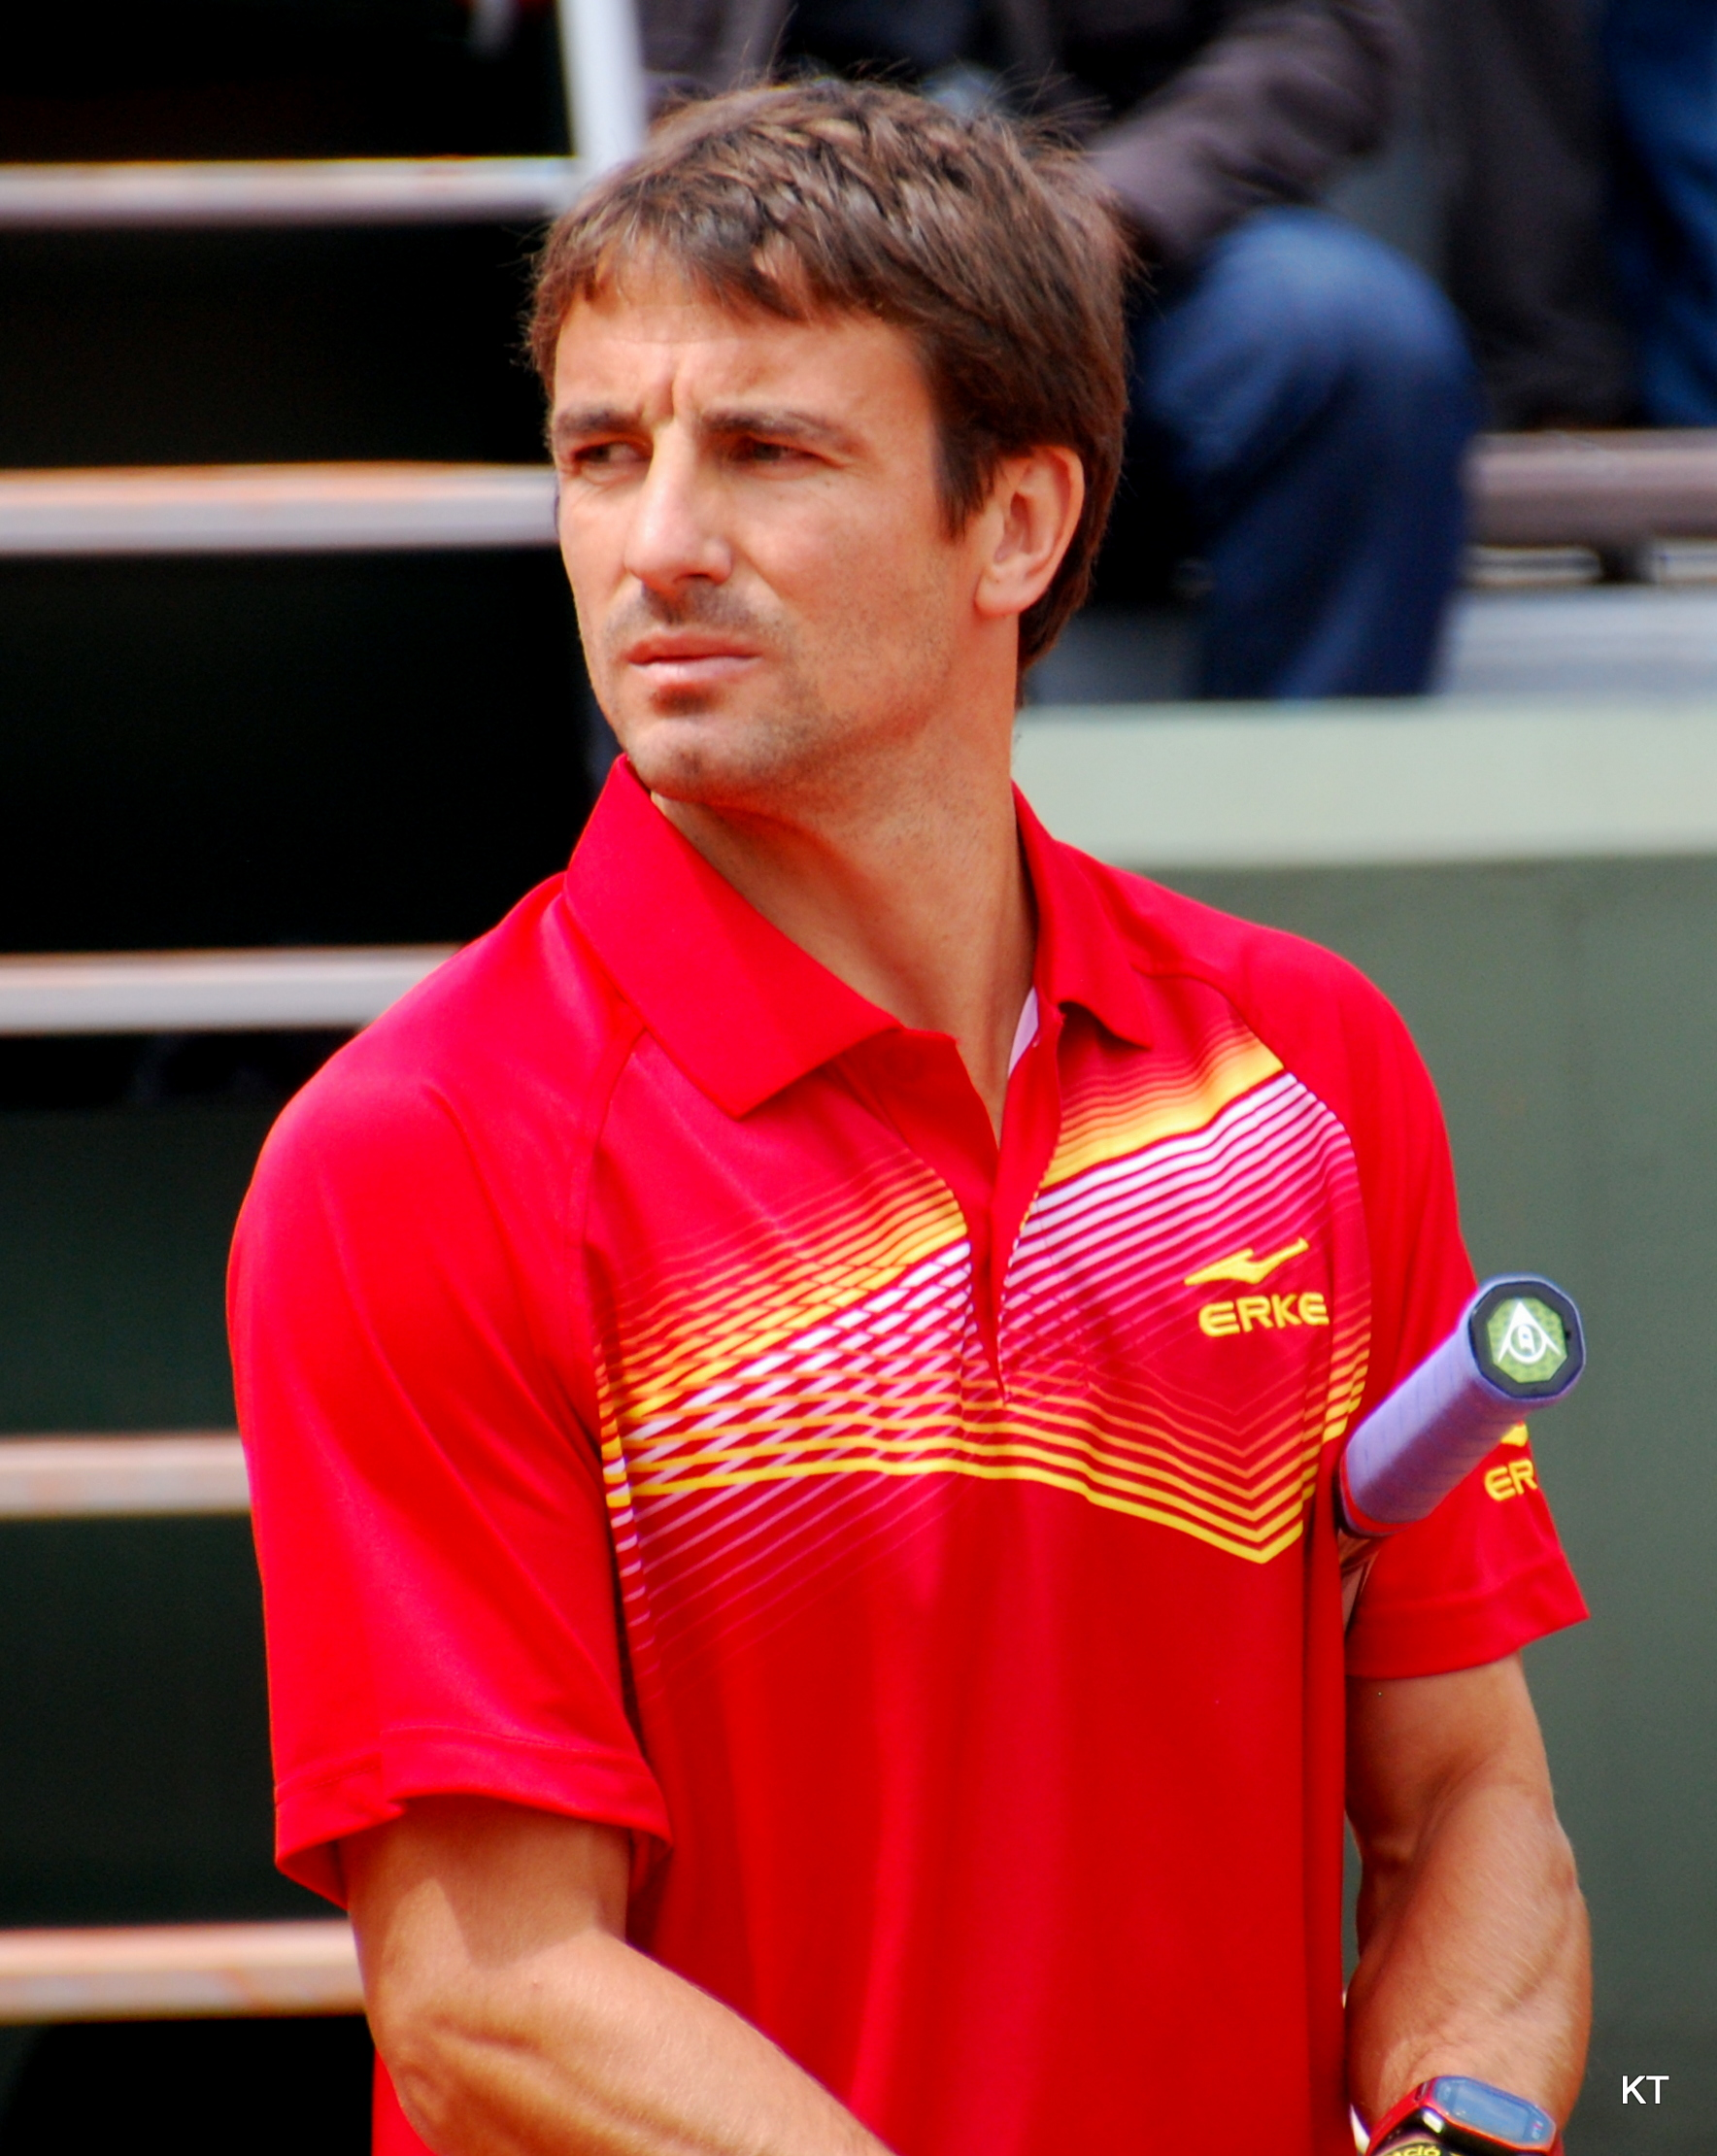 The 36-year old son of father (?) and mother(?) Tommy Robredo in 2018 photo. Tommy Robredo earned a  million dollar salary - leaving the net worth at 15 million in 2018